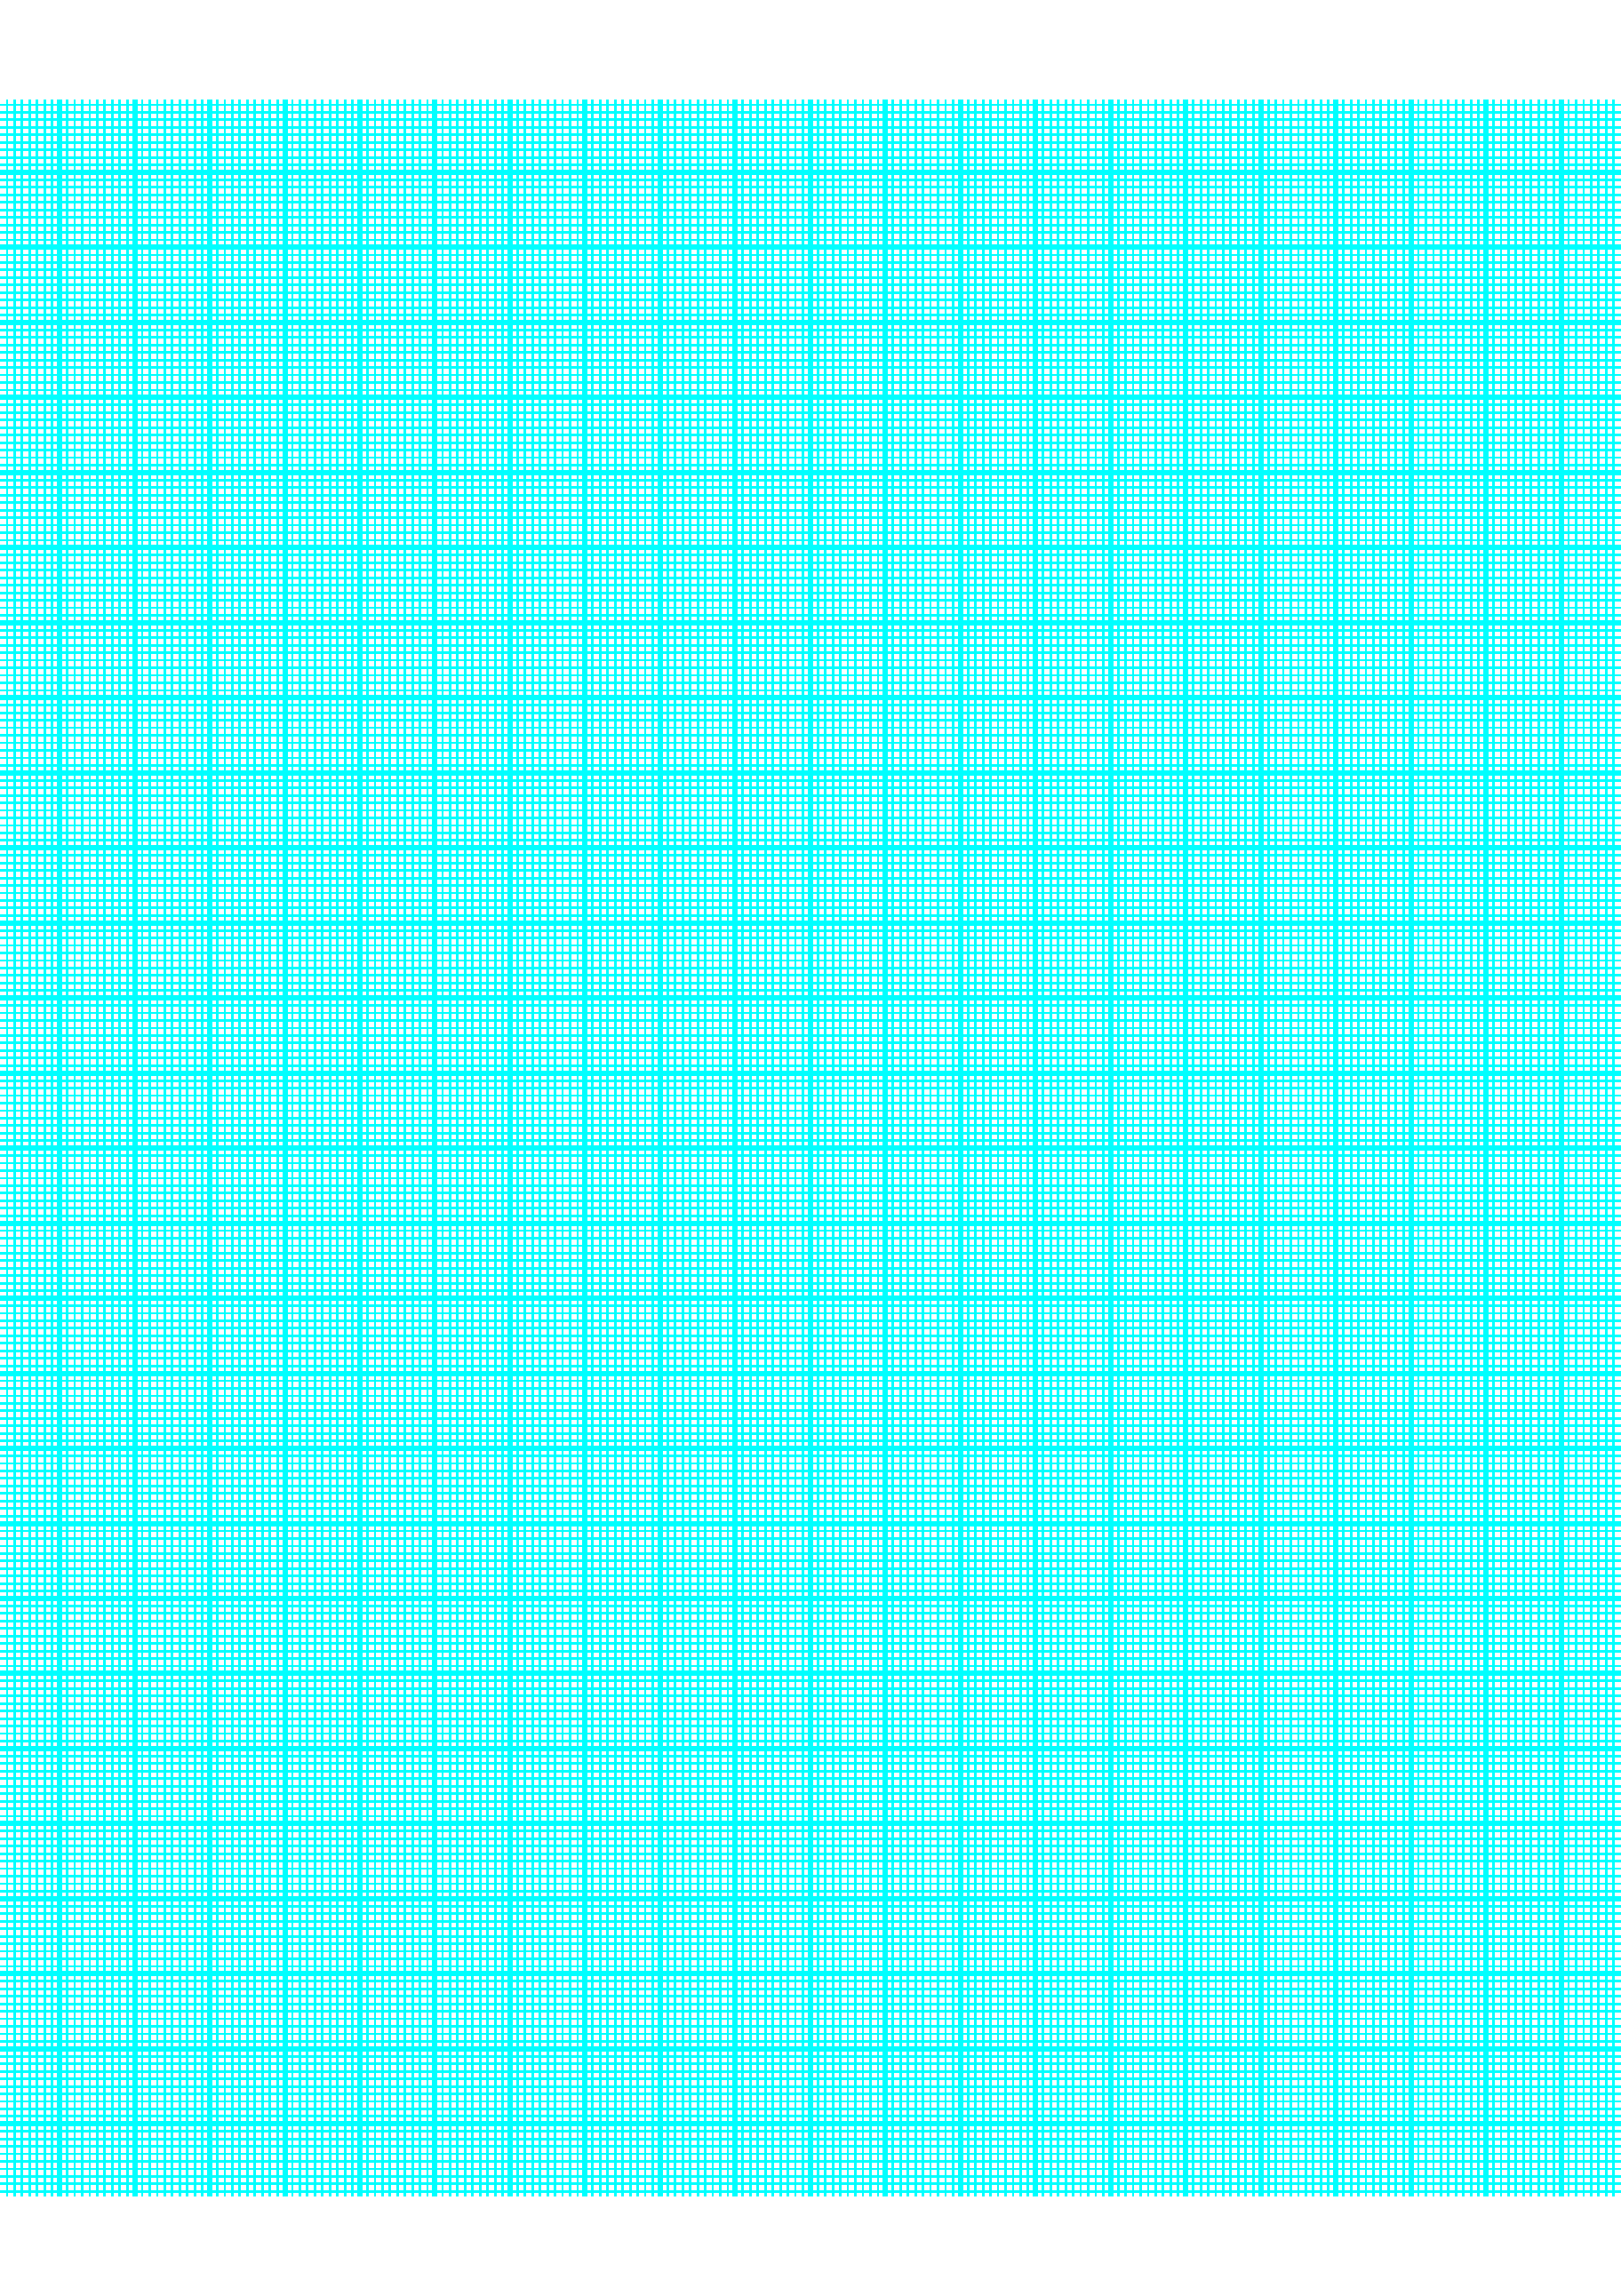 1 line per mm graph paper on letter sized paper centimeter free